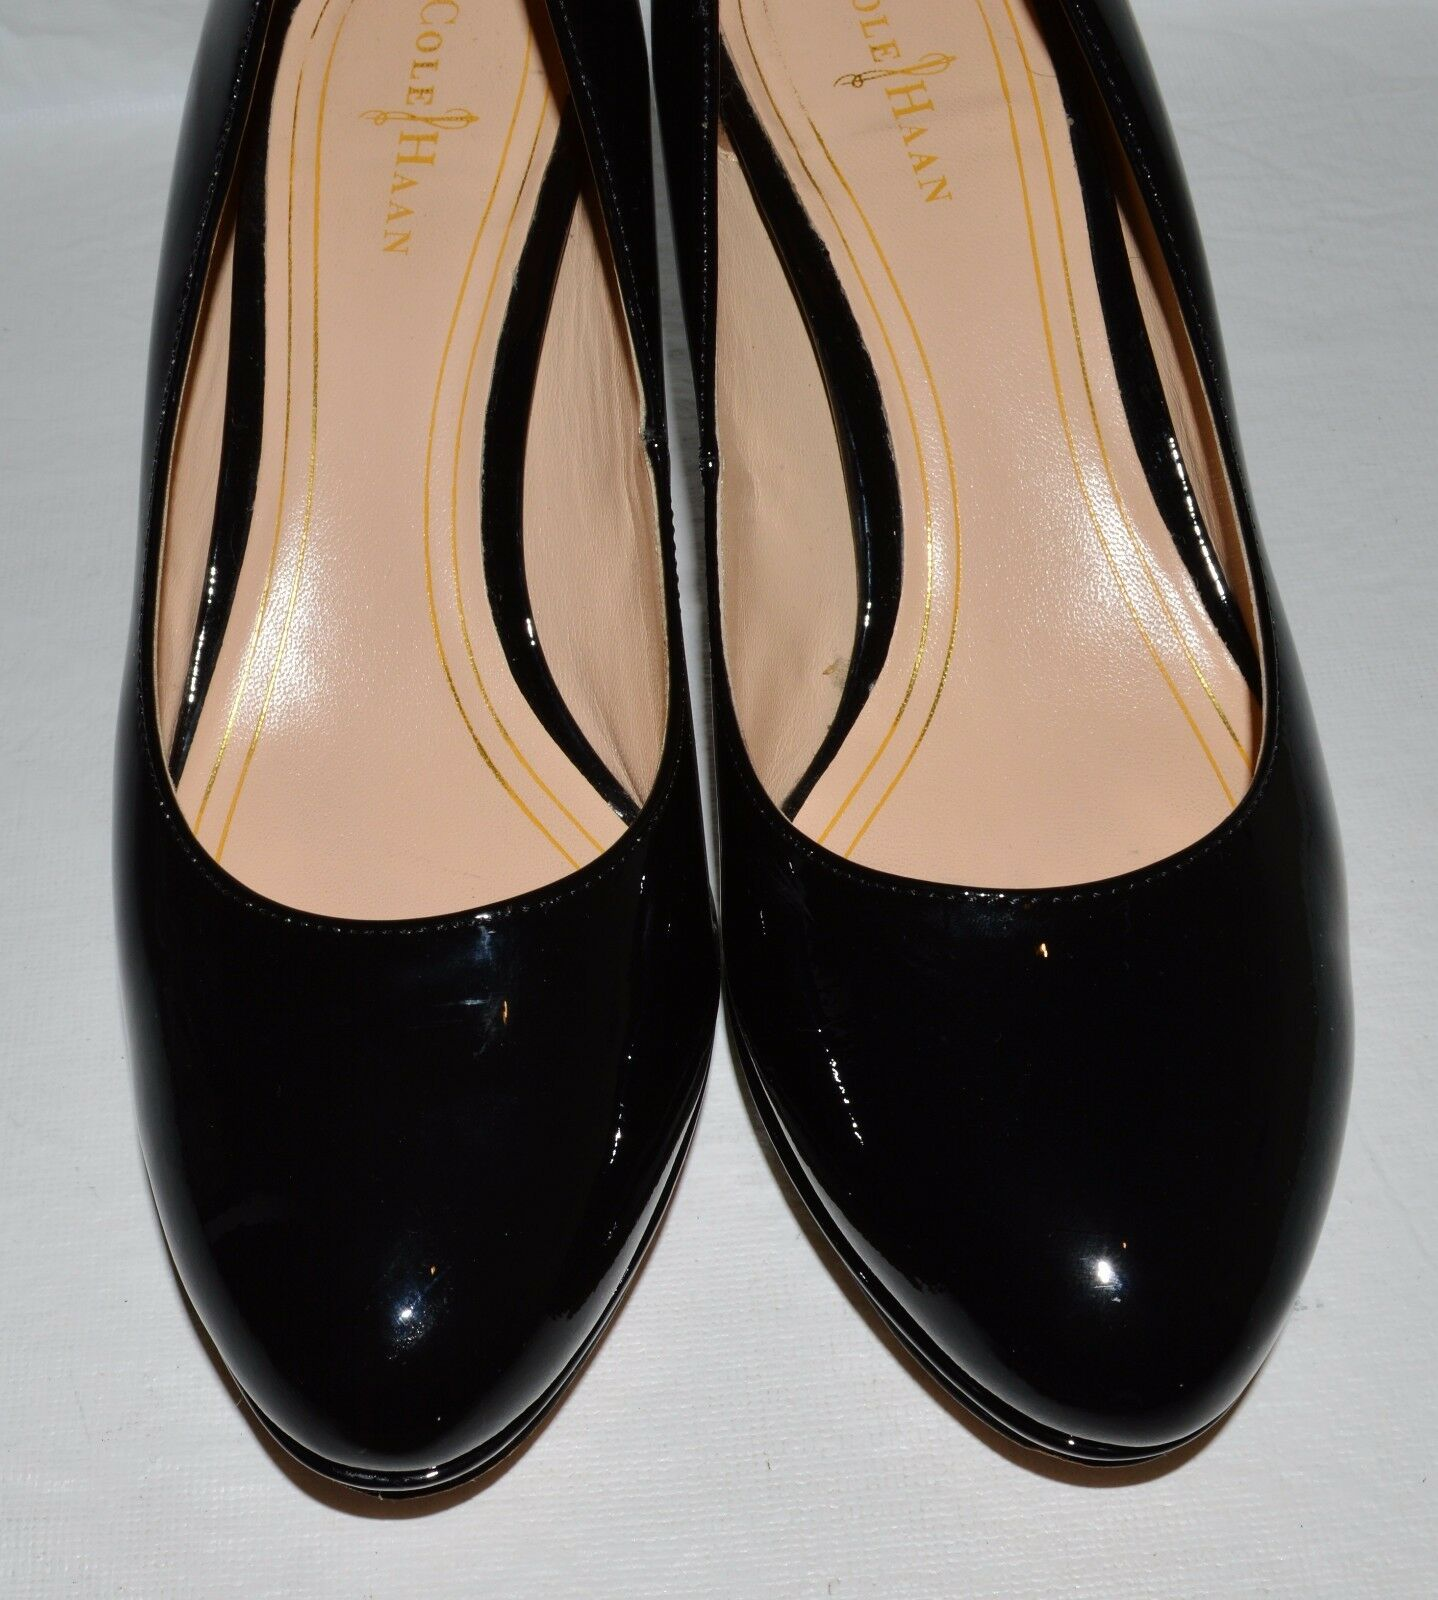 COLE B HAAN AIR SZ 7 B COLE BLACK PATENT LEATHER PLATFORM PUMPS HEELS Schuhe a9fd11